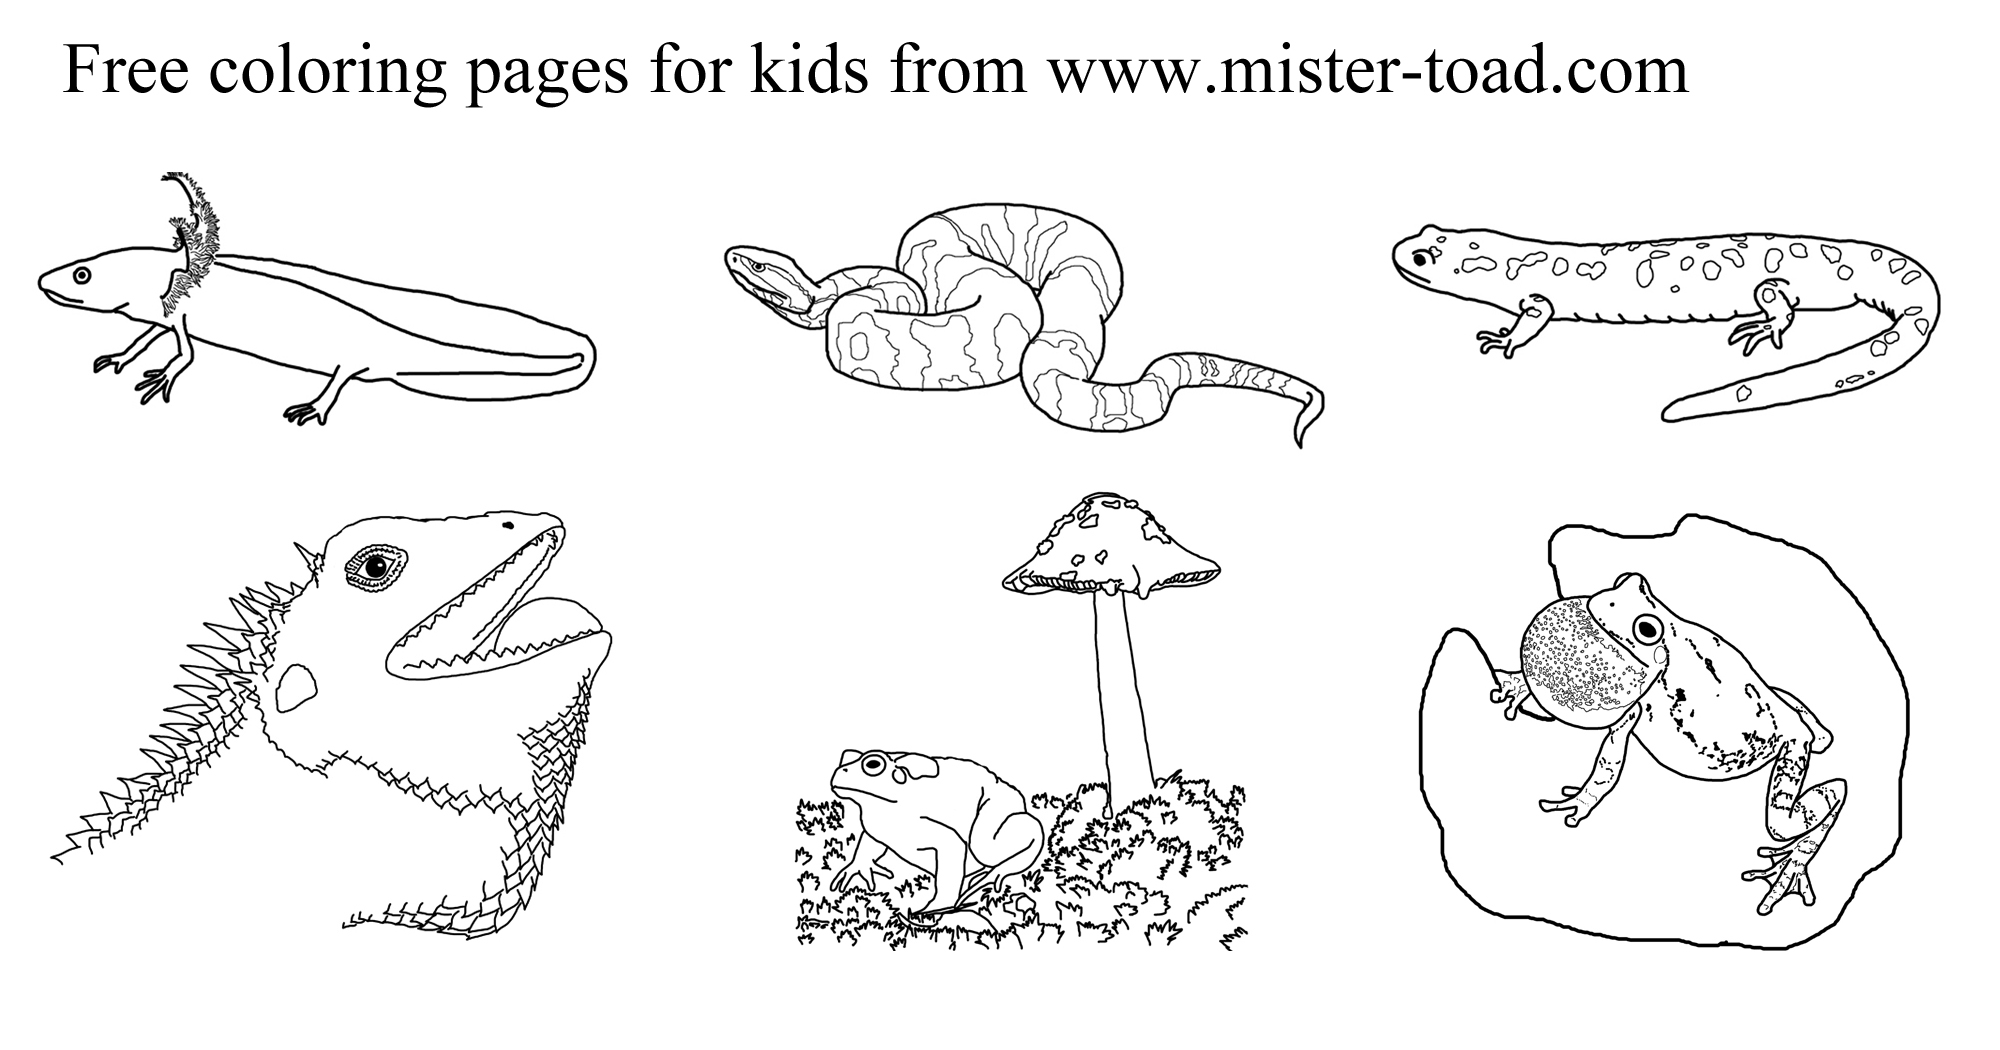 Coloring pages of amphibians and reptiles ~ Amphibian coloring, Download Amphibian coloring for free 2019